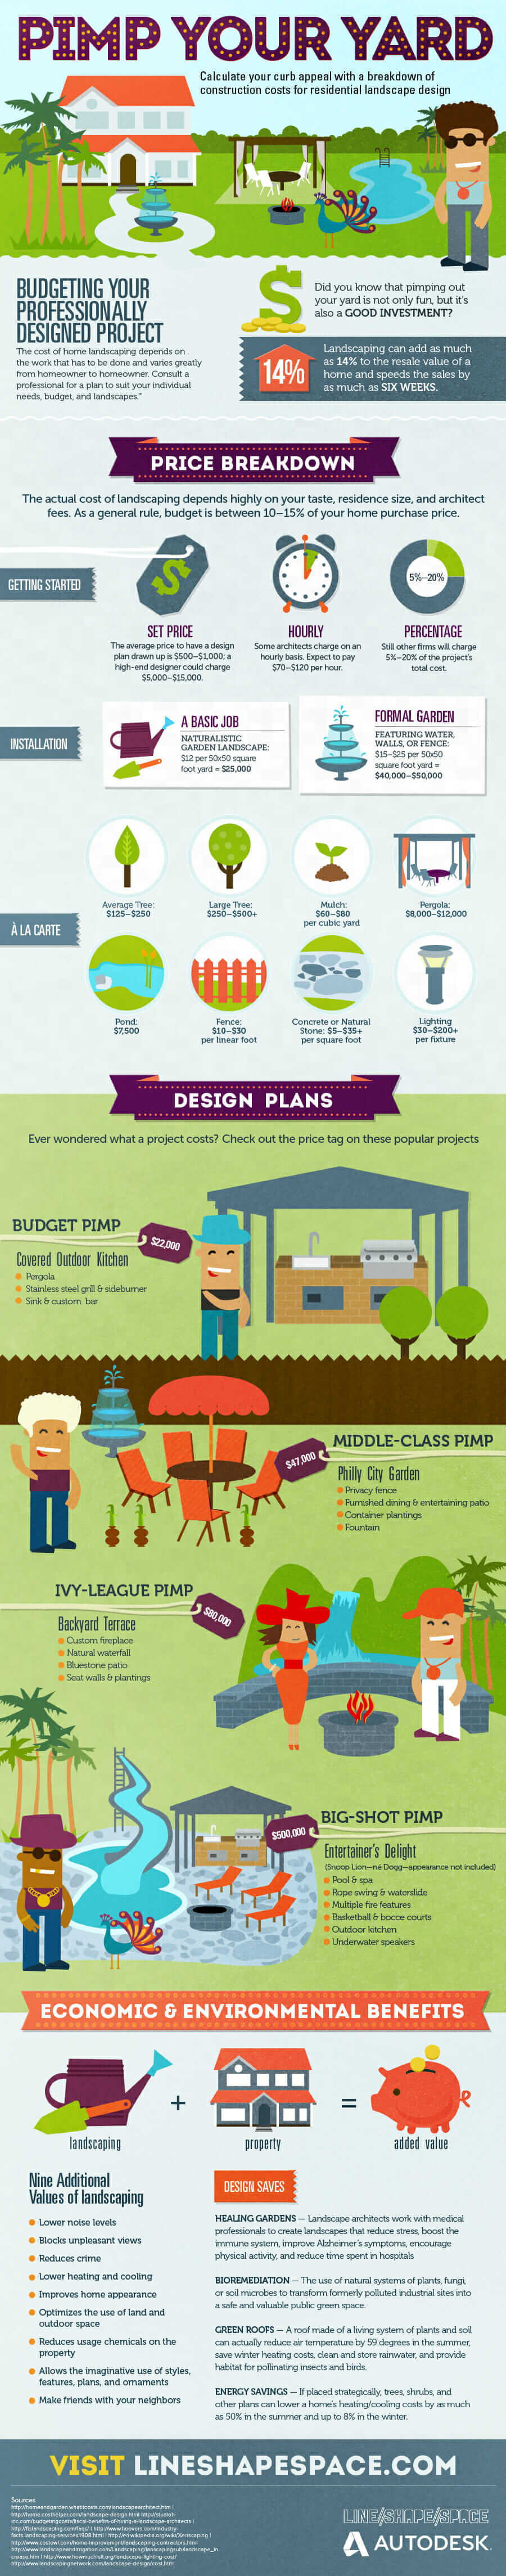 what-is-landscape-architecture-infographic